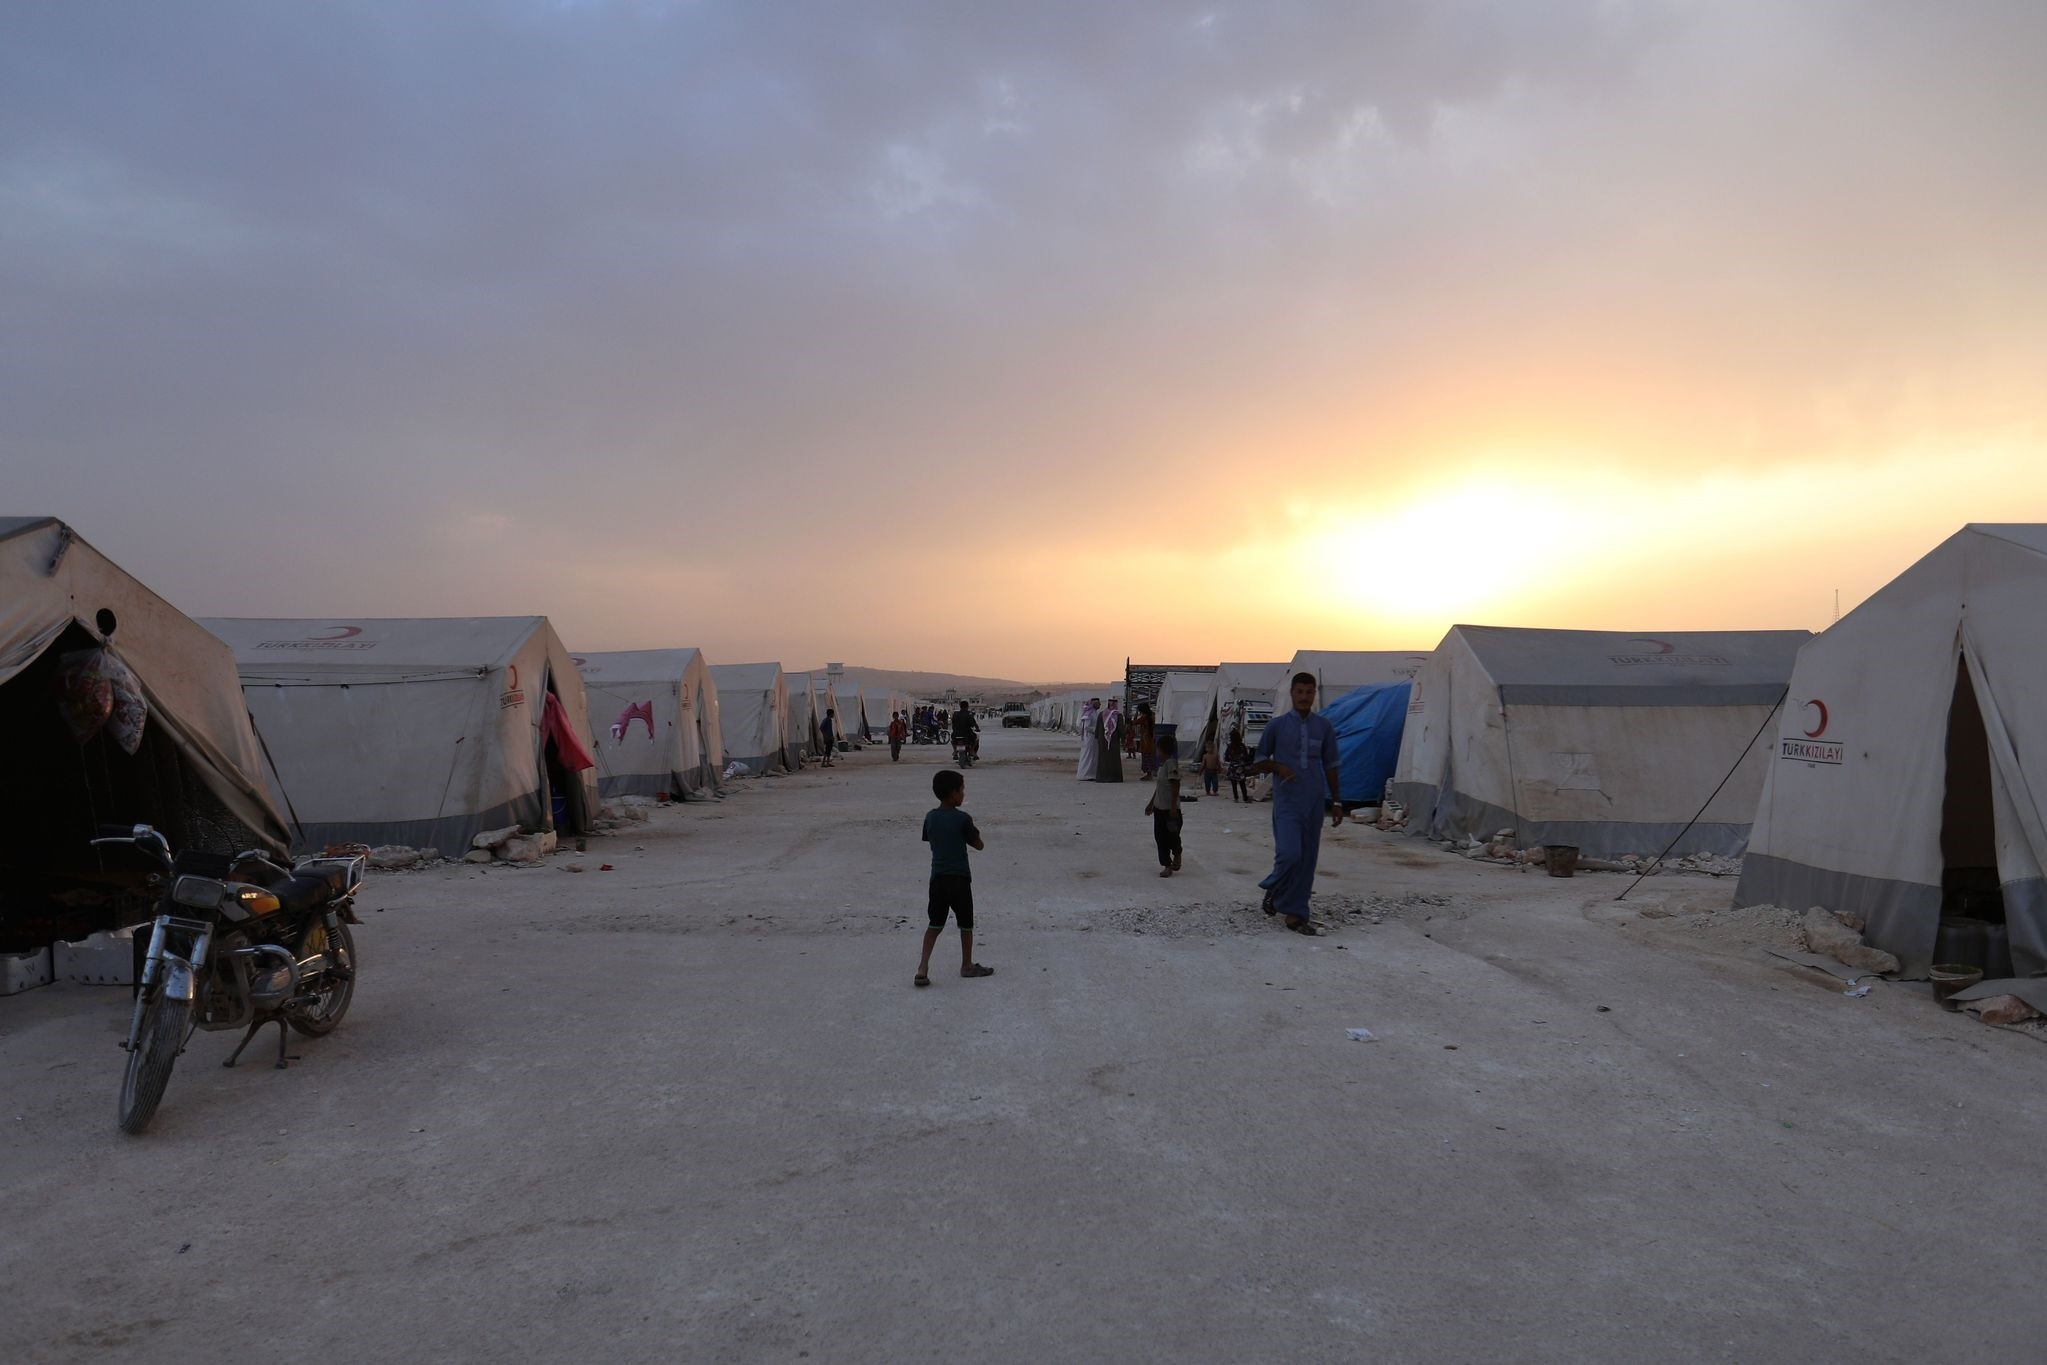 A camp for Syrian refugees at sunset in Kafaldin on the Syrian-Turkish border, Sept. 13.